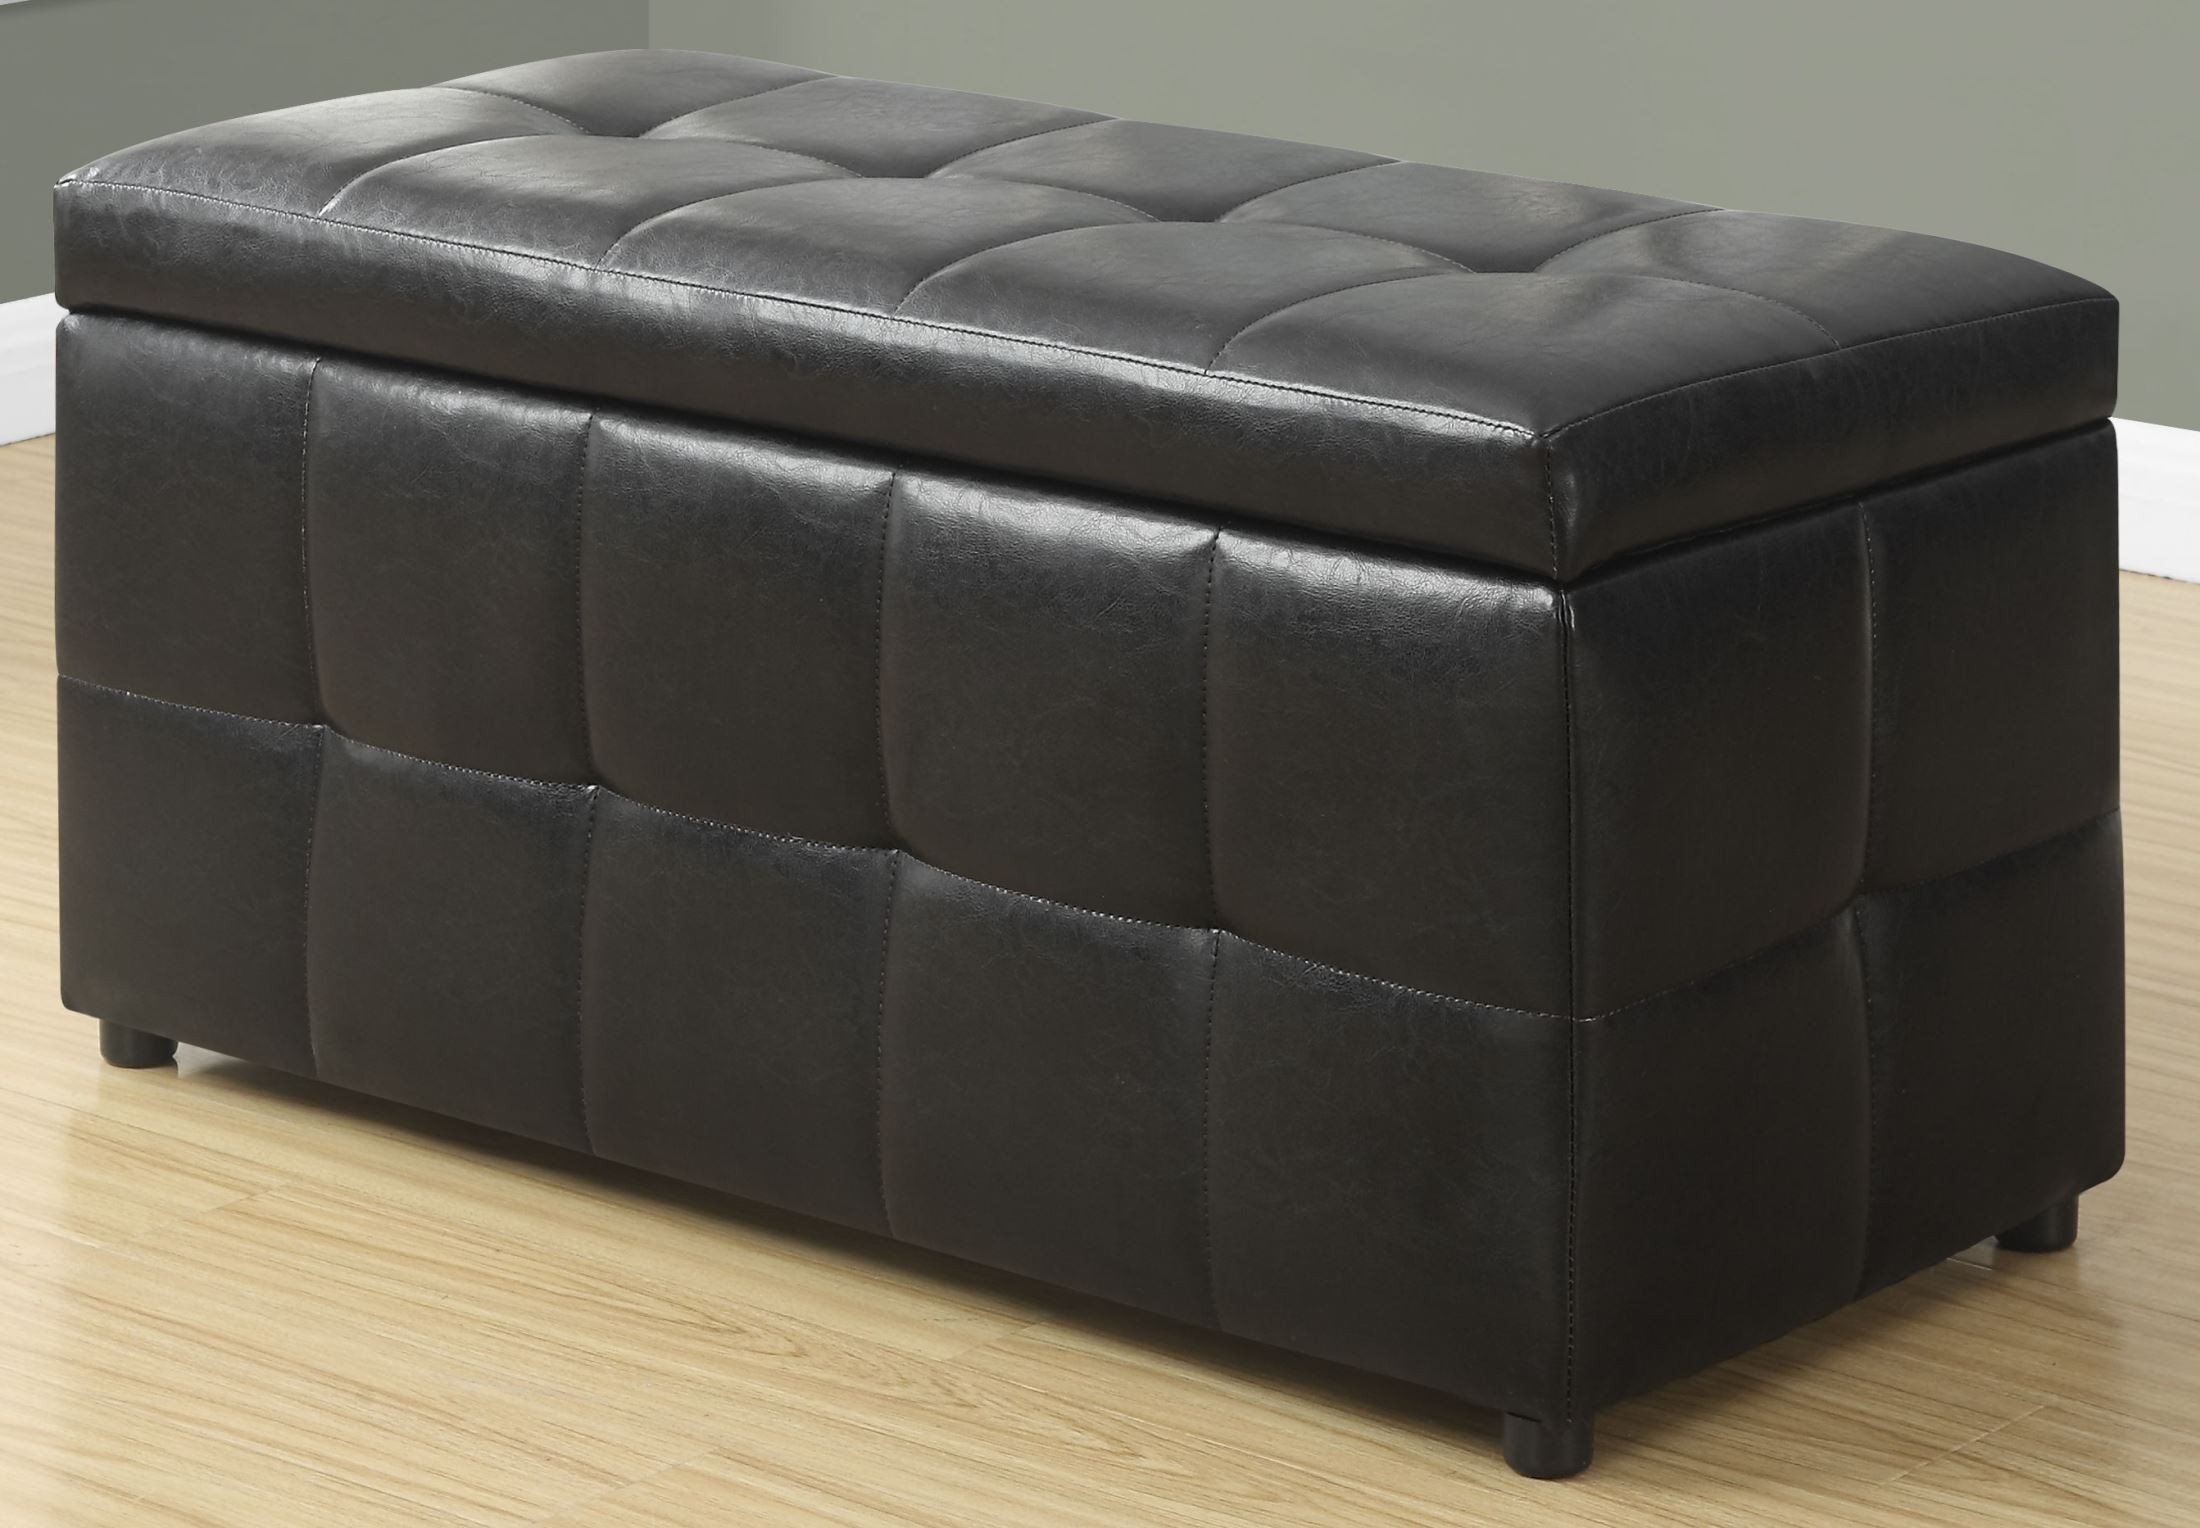 Dark brown leather storage ottoman 8984 monarch for Dark brown leather storage ottoman